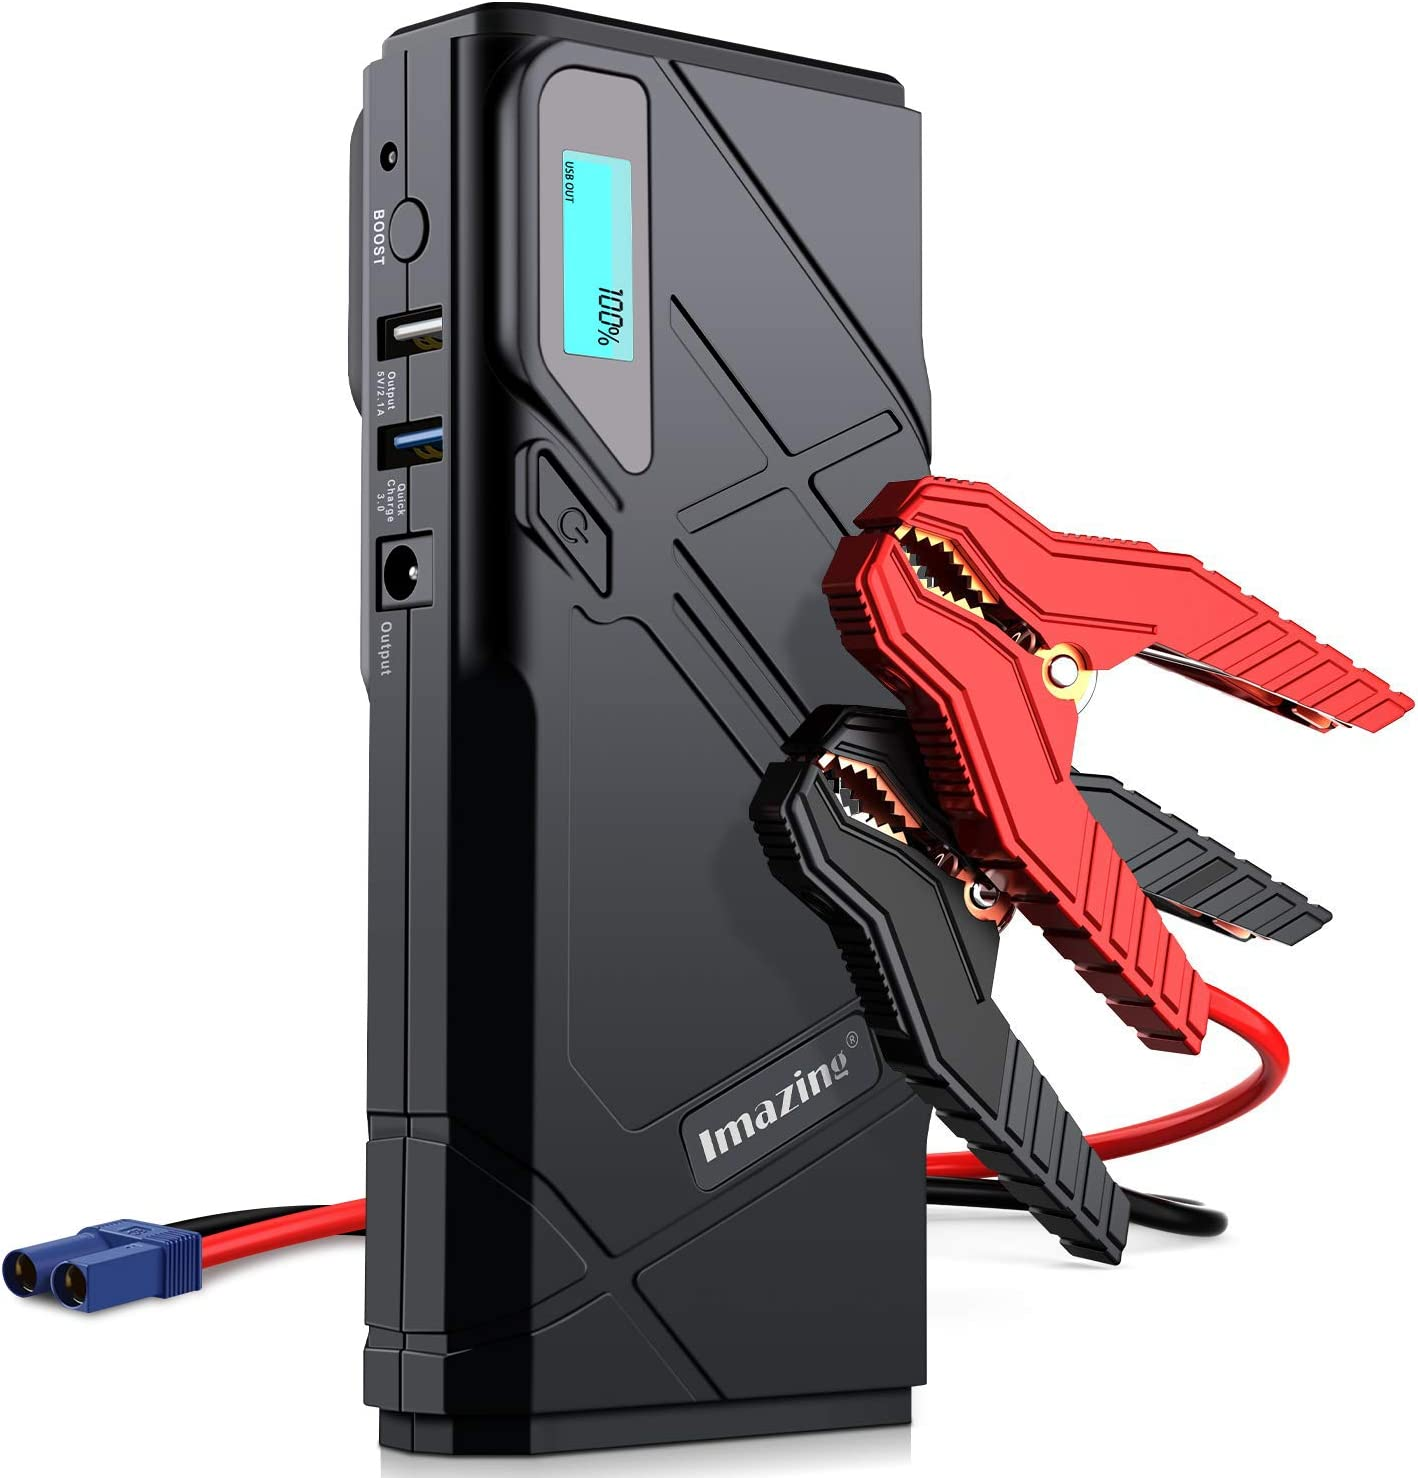 12V Auto Battery Booster Portable Power Pack with Smart Jumper Cables 1500A Peak IM23 Imazing Portable Car Jump Starter Up to 8L Gas or 6L Diesel Engine